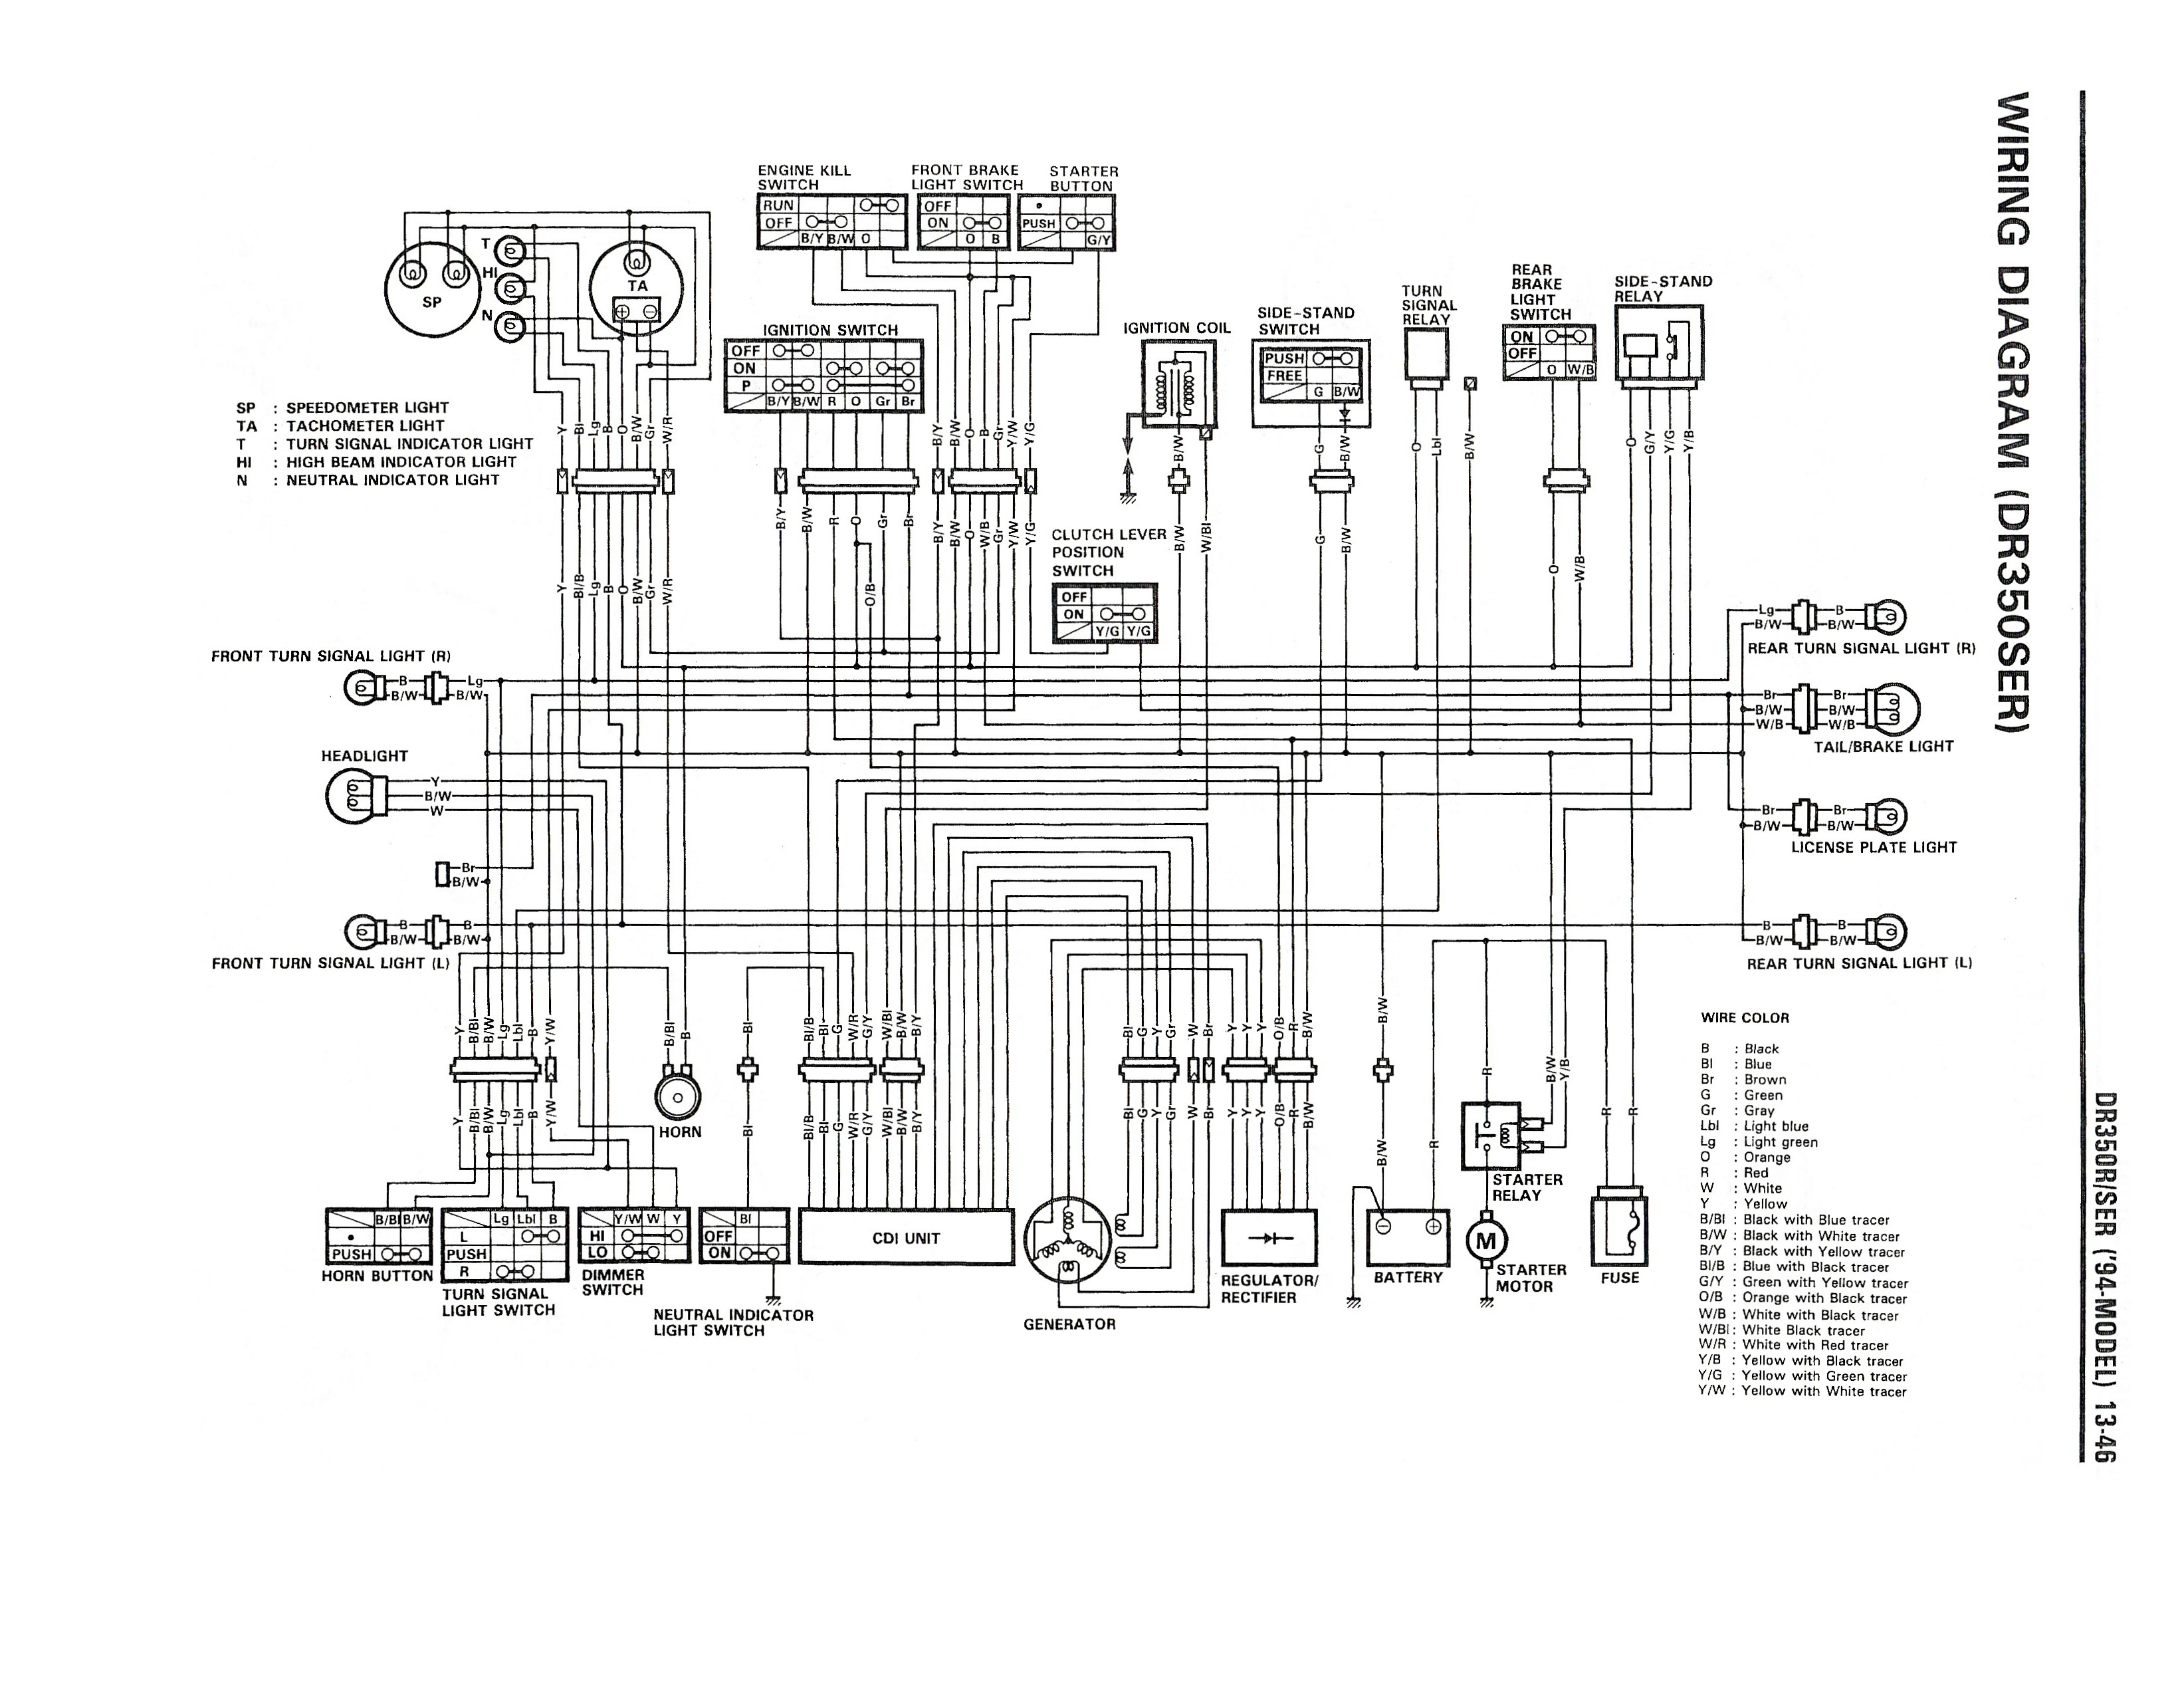 Wiring diagram for the DR350 SE (1994 and later models